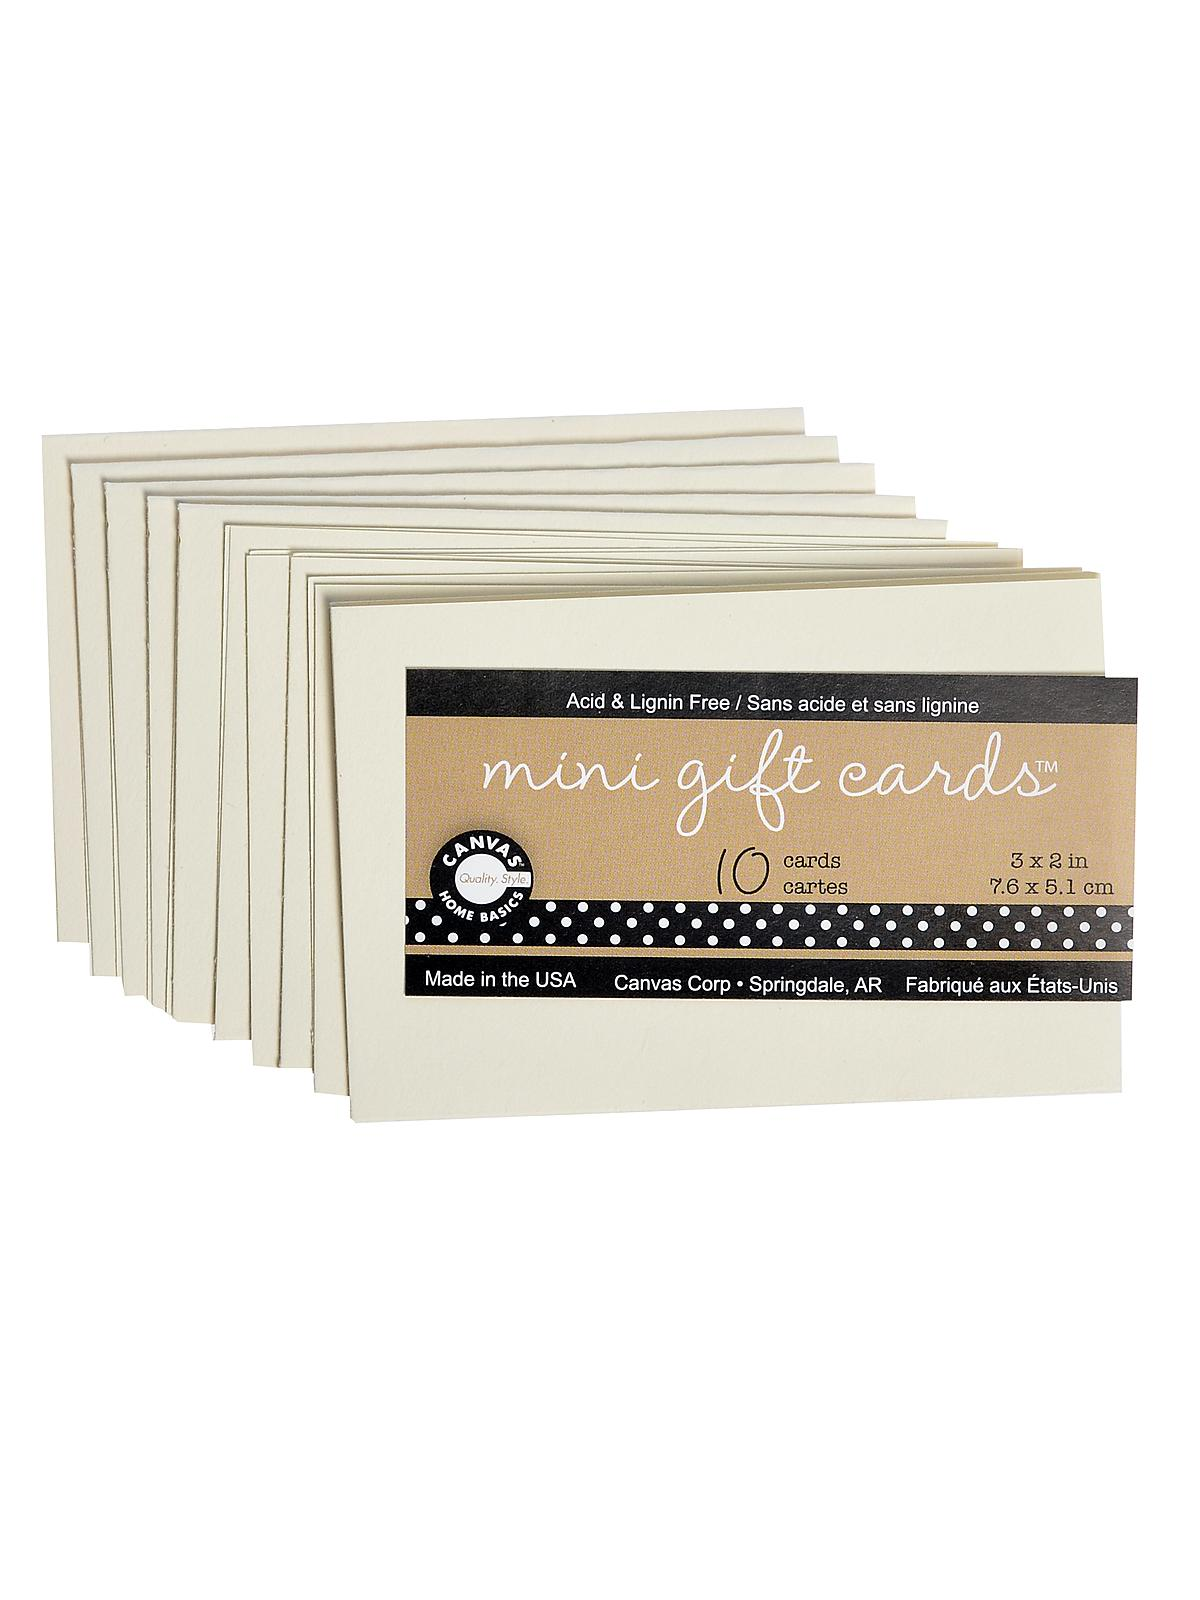 Packaged Cards And Envelopes Mini Gift Cards Ivory 3 In. X 2 In. Pack Of 10